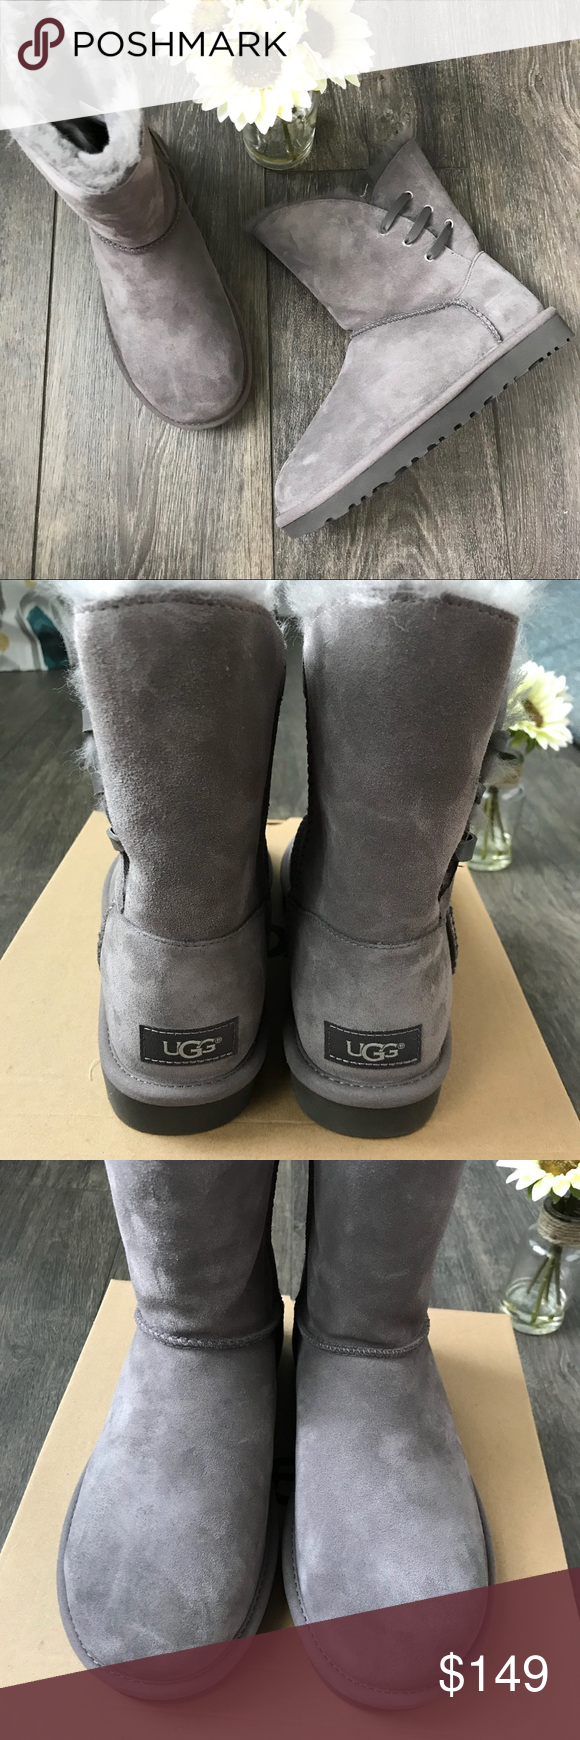 5456eec9003 UGG Constantine boots in charcoal NWT UGG Constantine boots in ...